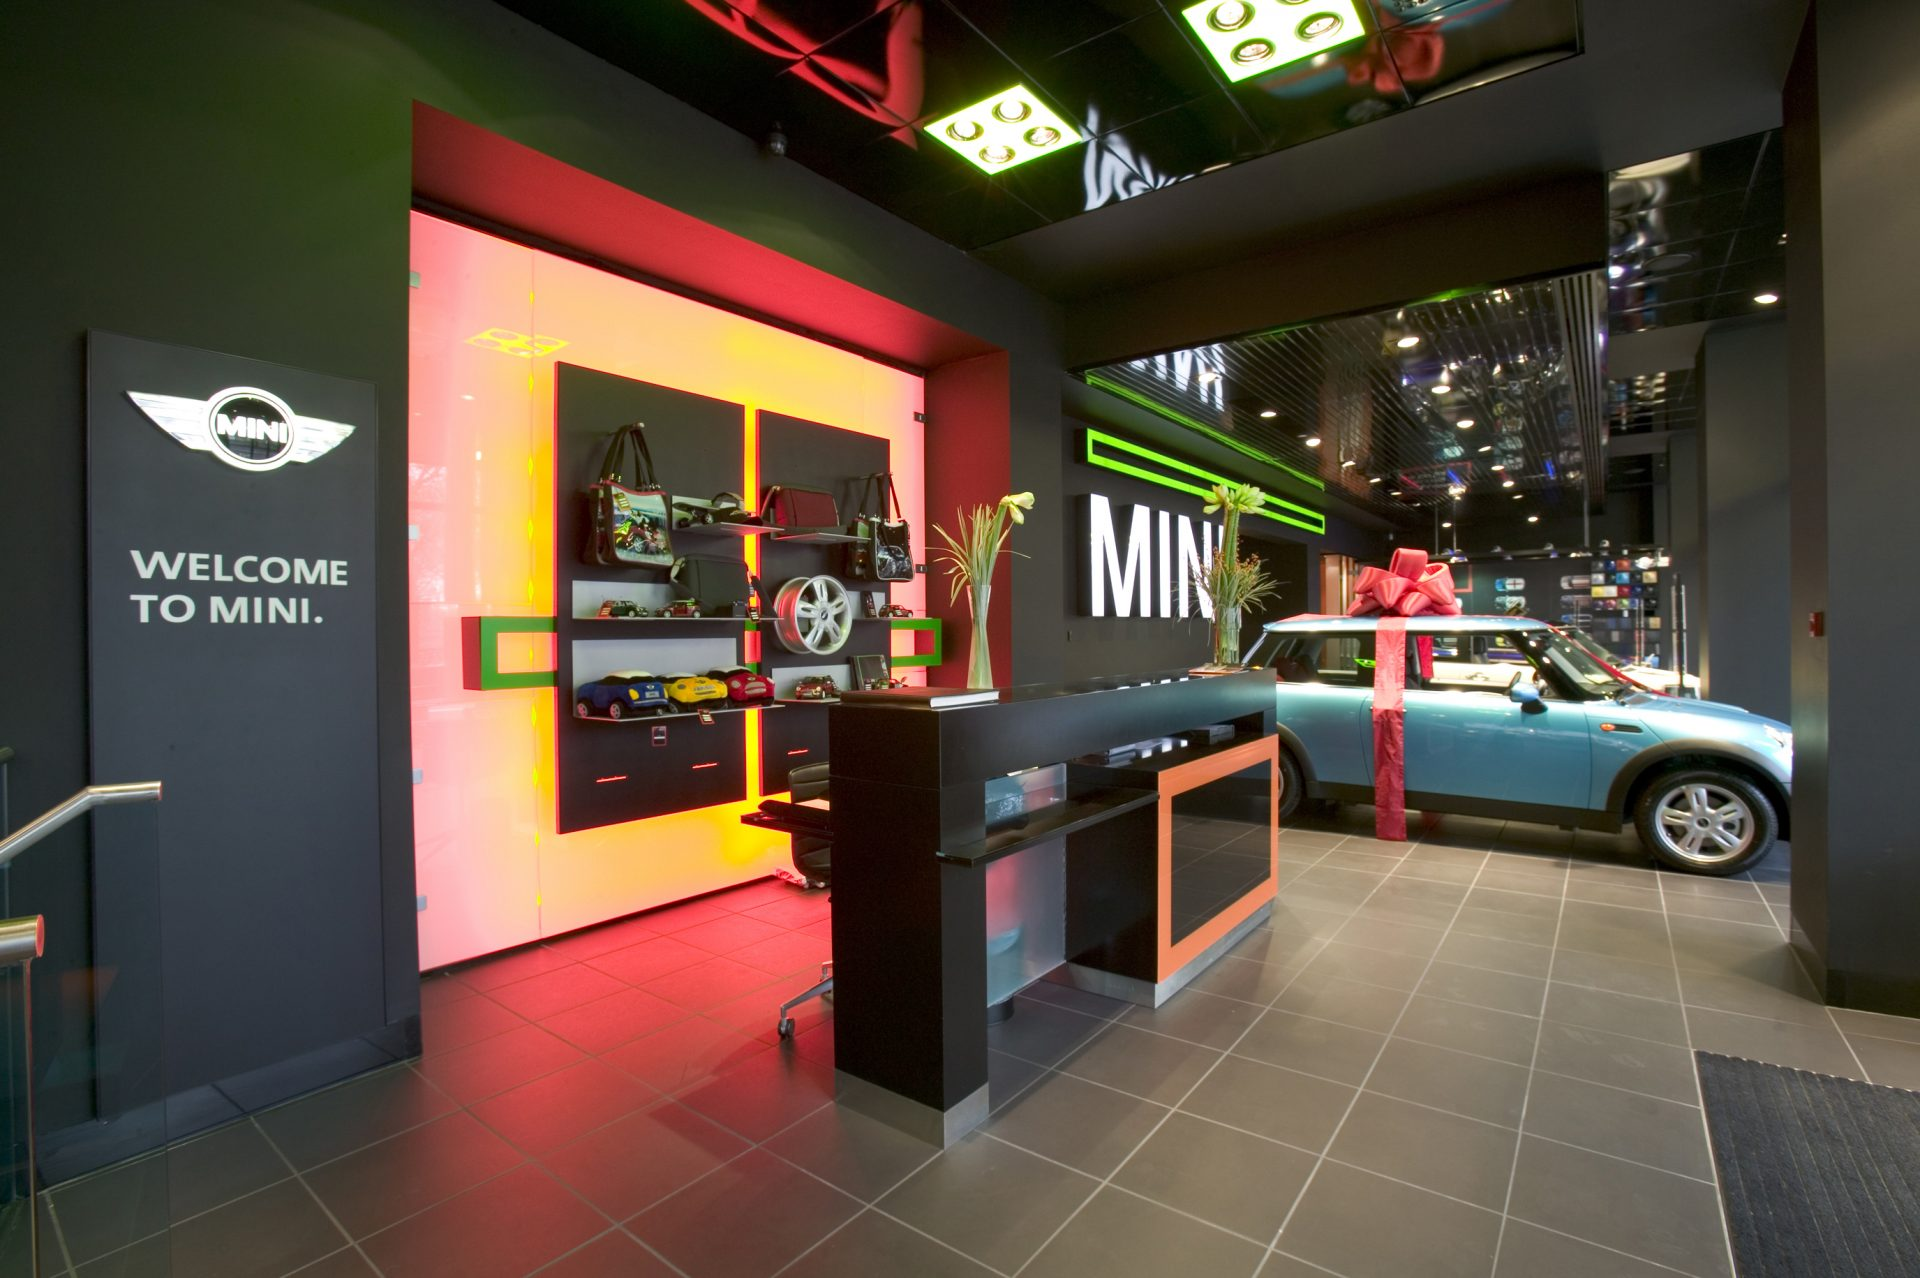 MINI Park Lane Reception Black Orange Green